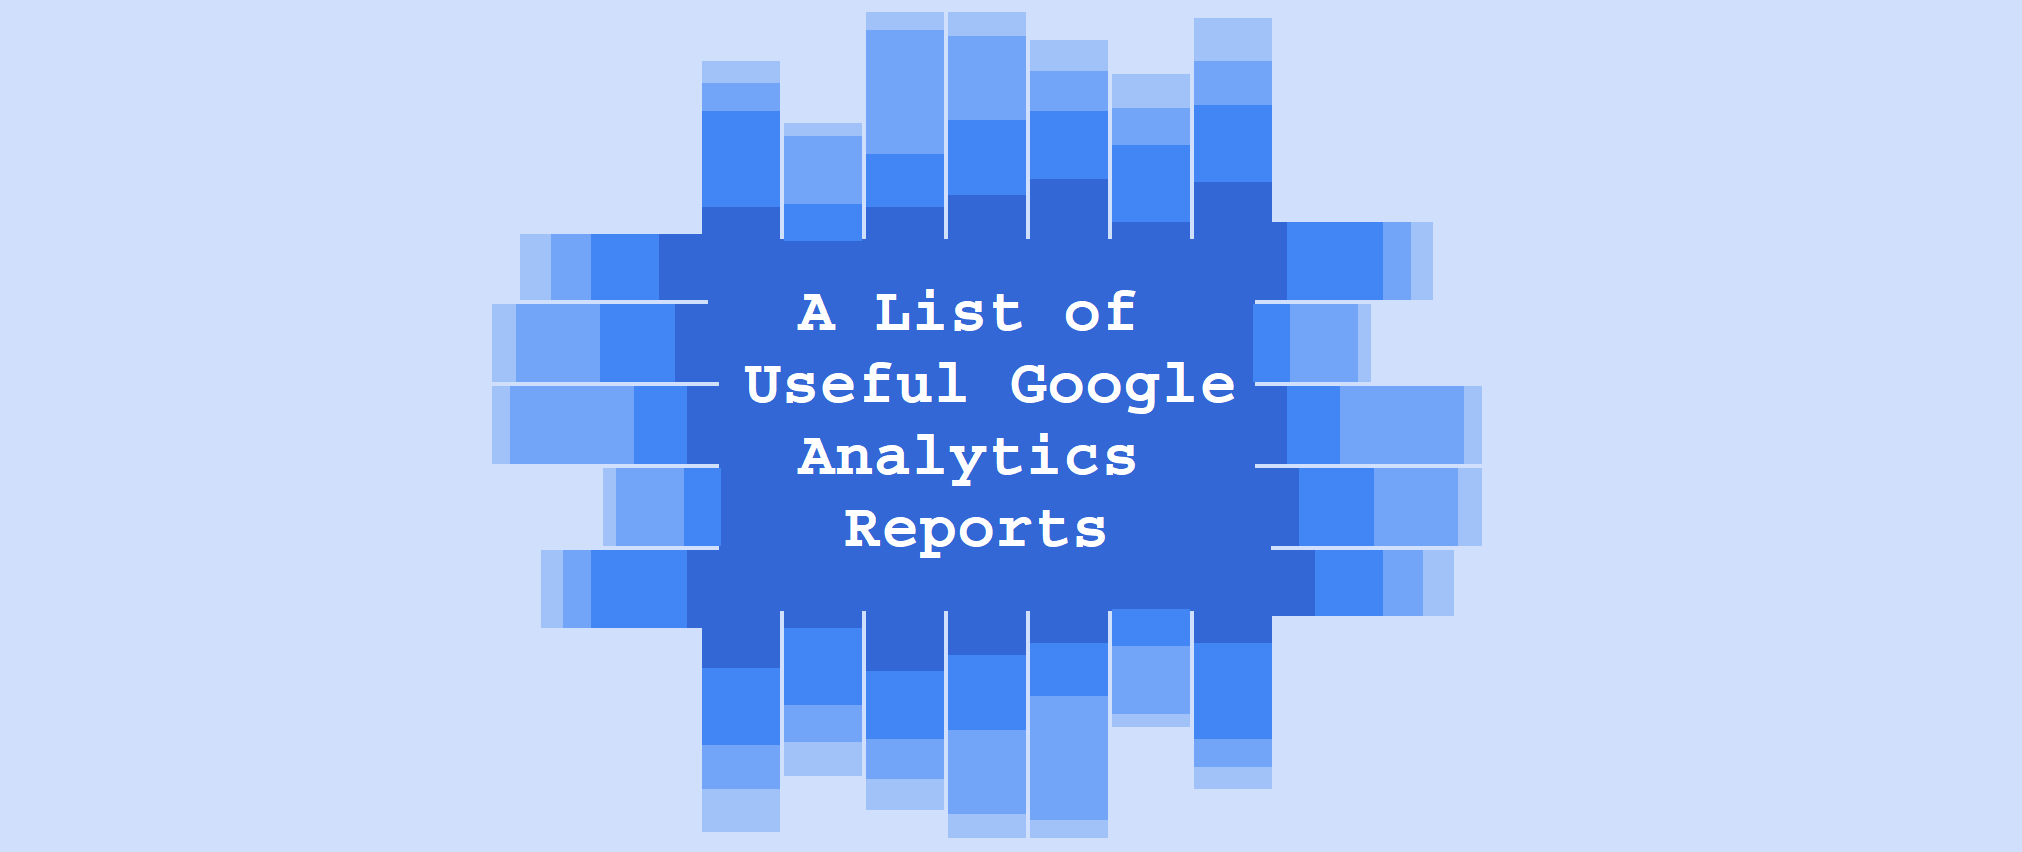 A List of Useful Google Analytics Reports